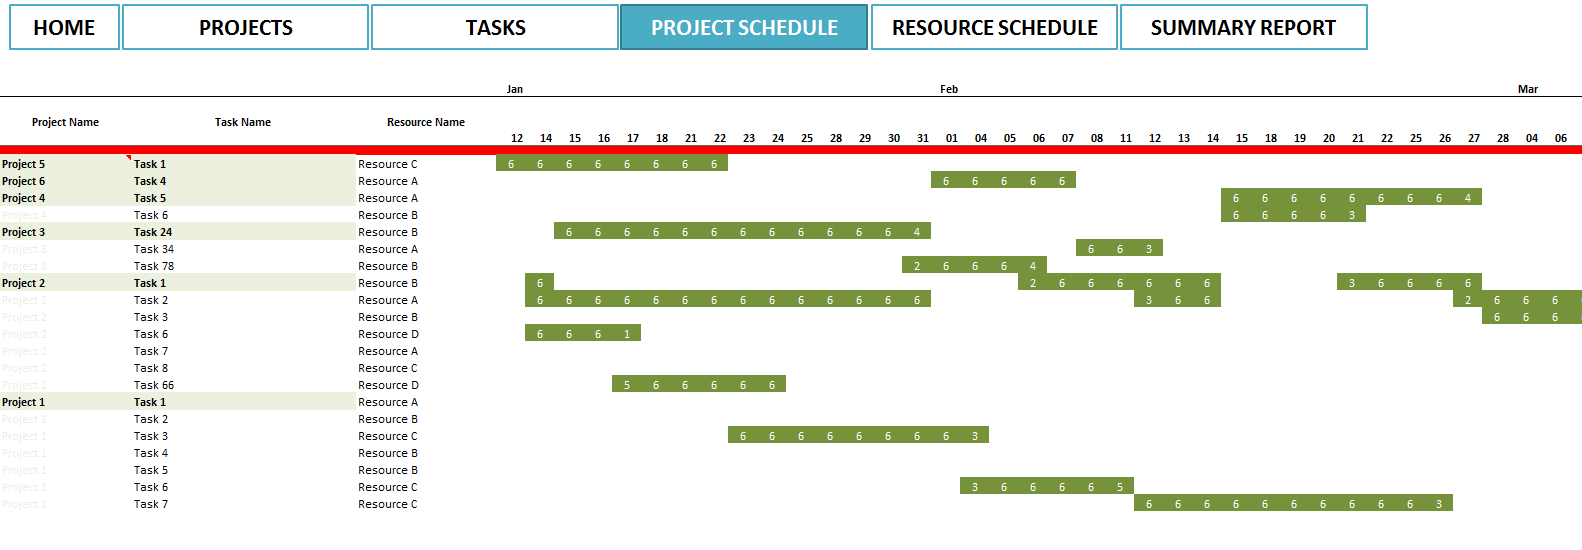 Project Calendar Template Excel email microsoft to do list free – Free Project Management Calendar Template